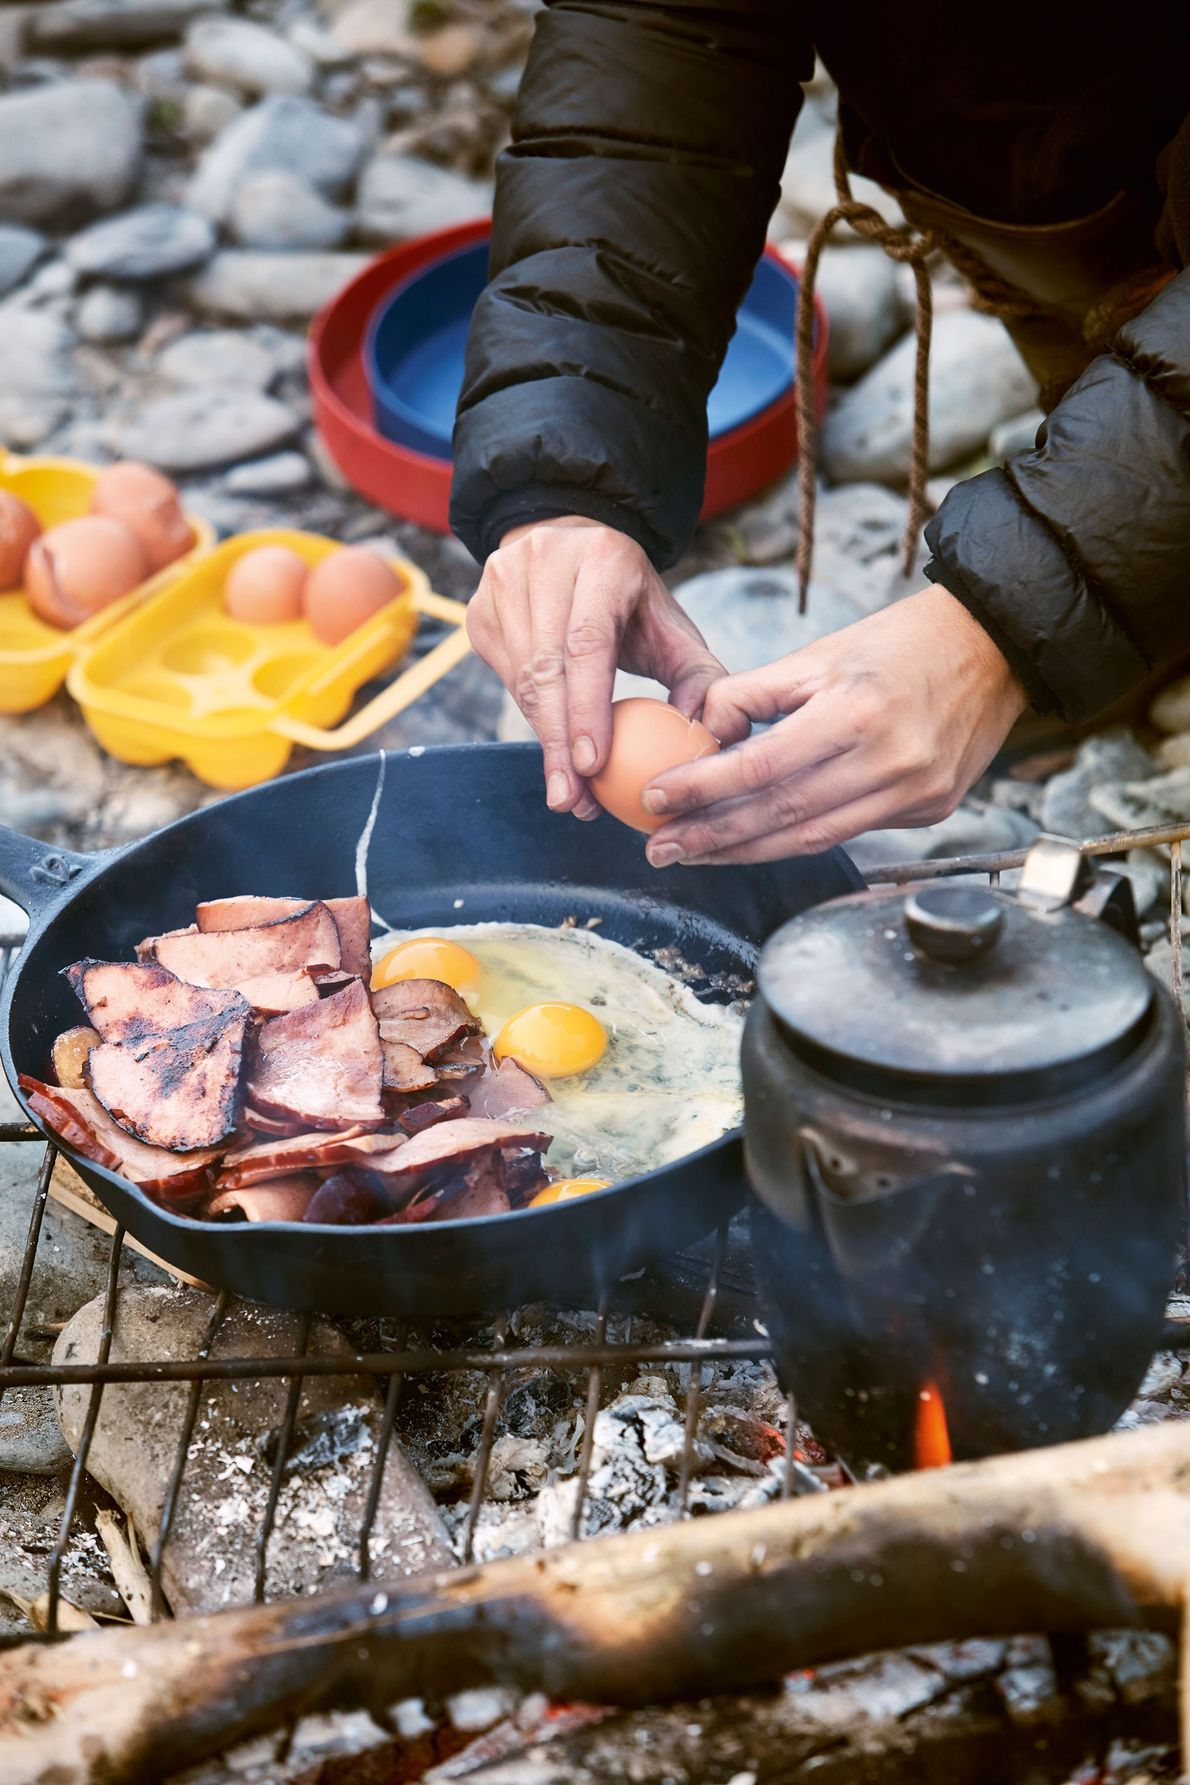 A hearty Canadian campfire meal of bacon rashers with maple syrup and fried eggs.